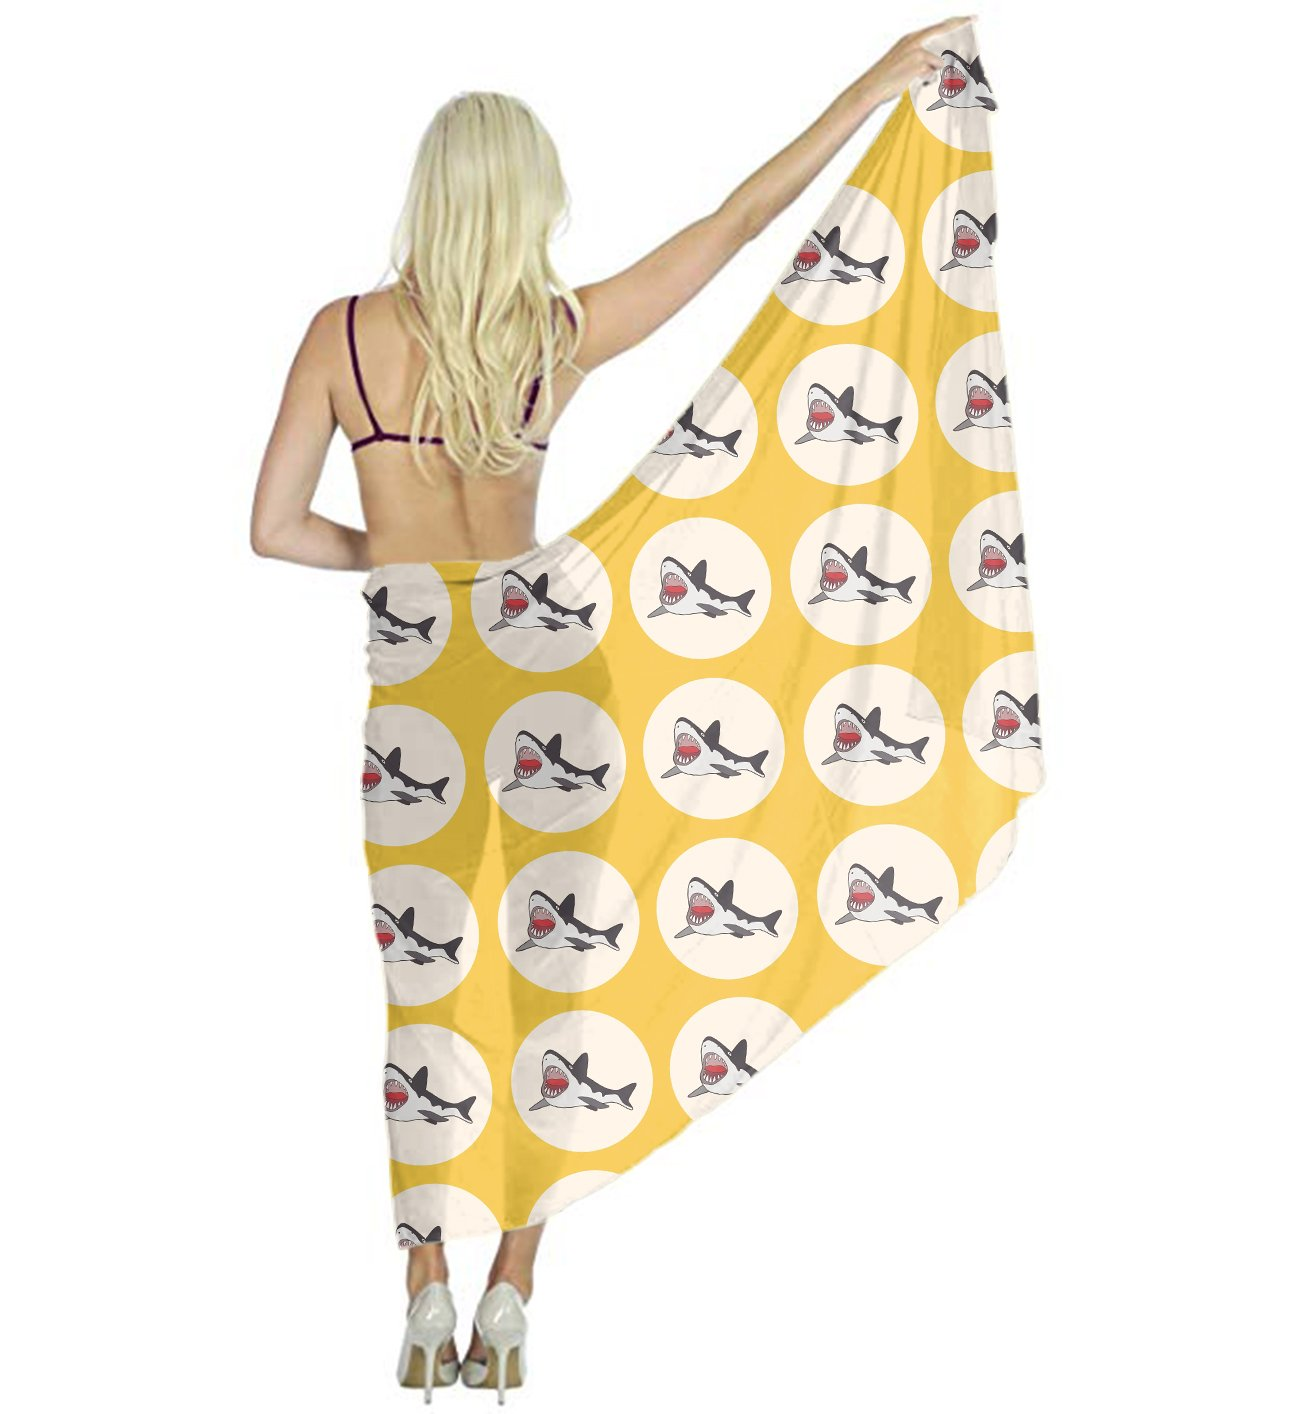 Yellow Shark Scarf for Evening Dresses, Wedding Shawl Wrap for Women